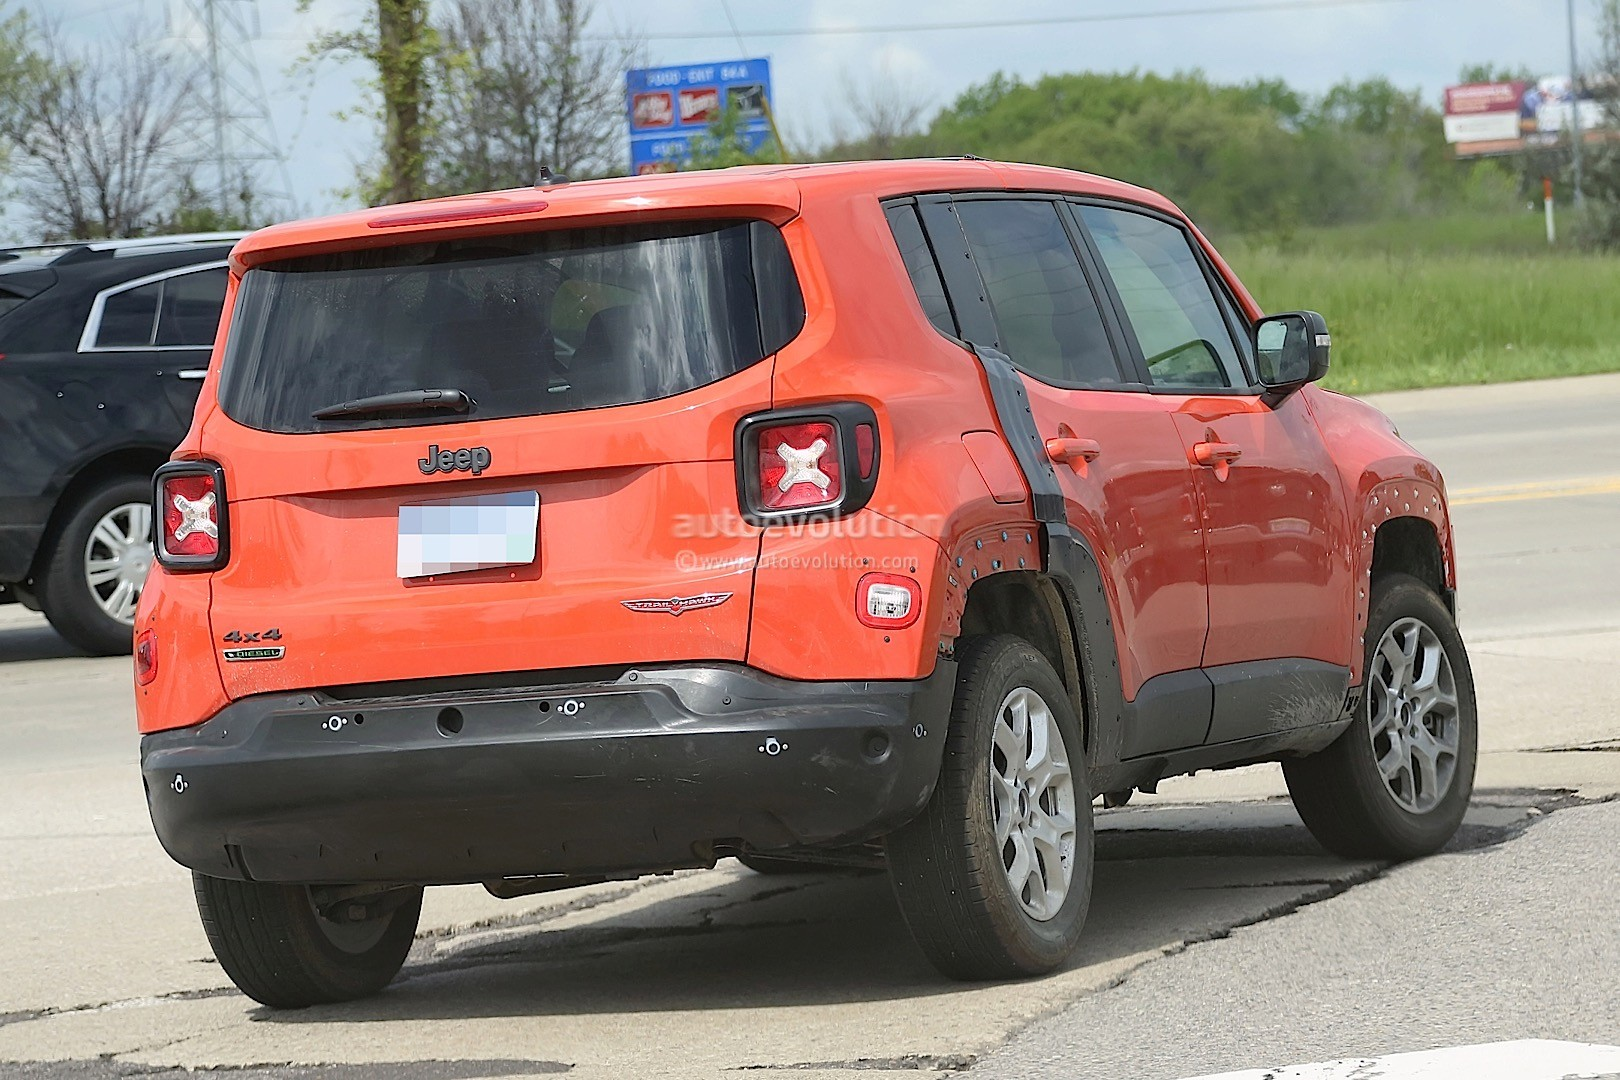 2017 Jeep C Suv Prototype Spied Wearing Renegade Body